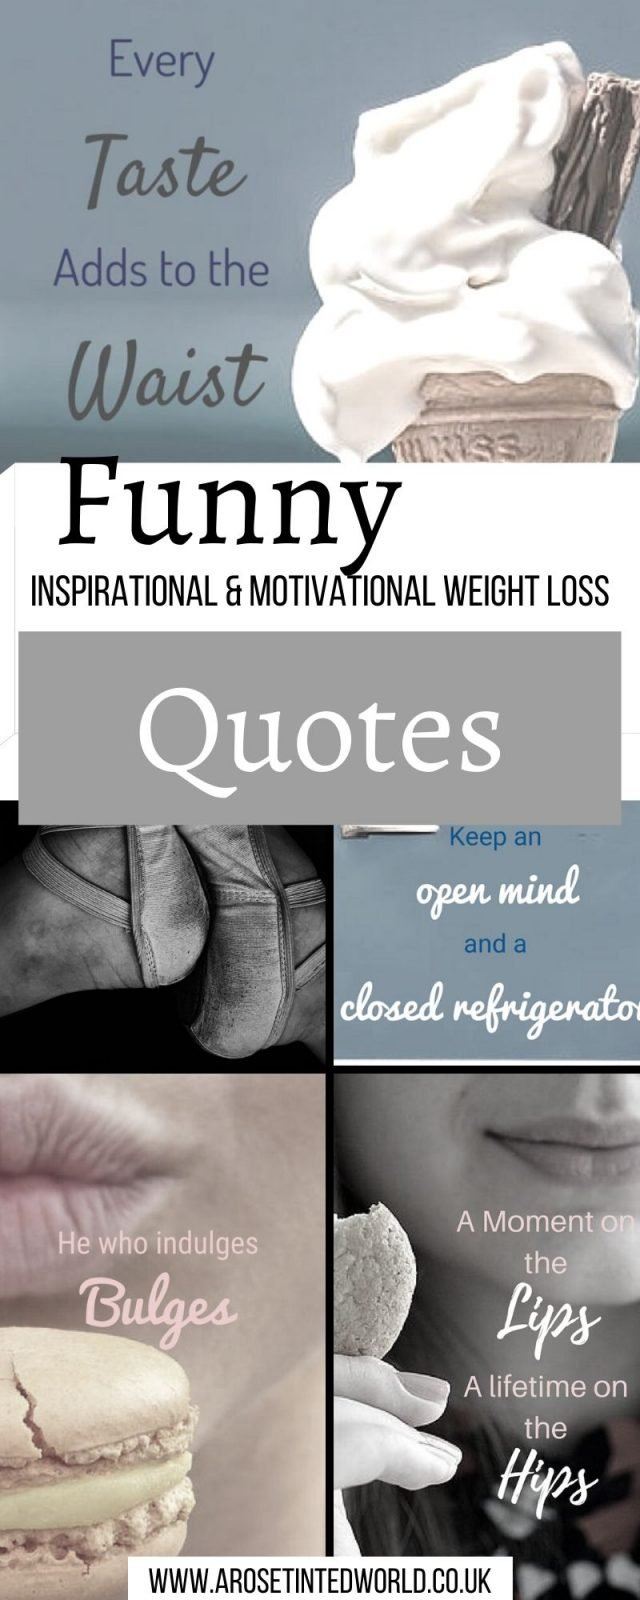 Motivational and Funny Weight Loss quotes #quotes #weightloss #weightlossjourney #diet #dieting #slimming #motivationalquotes #motivation #quotestoliveby #quoteoftheday #quotesdaily #quotesinspirational #quotesinspirationalpositive #quotesmotivation #positivequotes #positivethinking #positivethoughtsquotes #positivityquotes